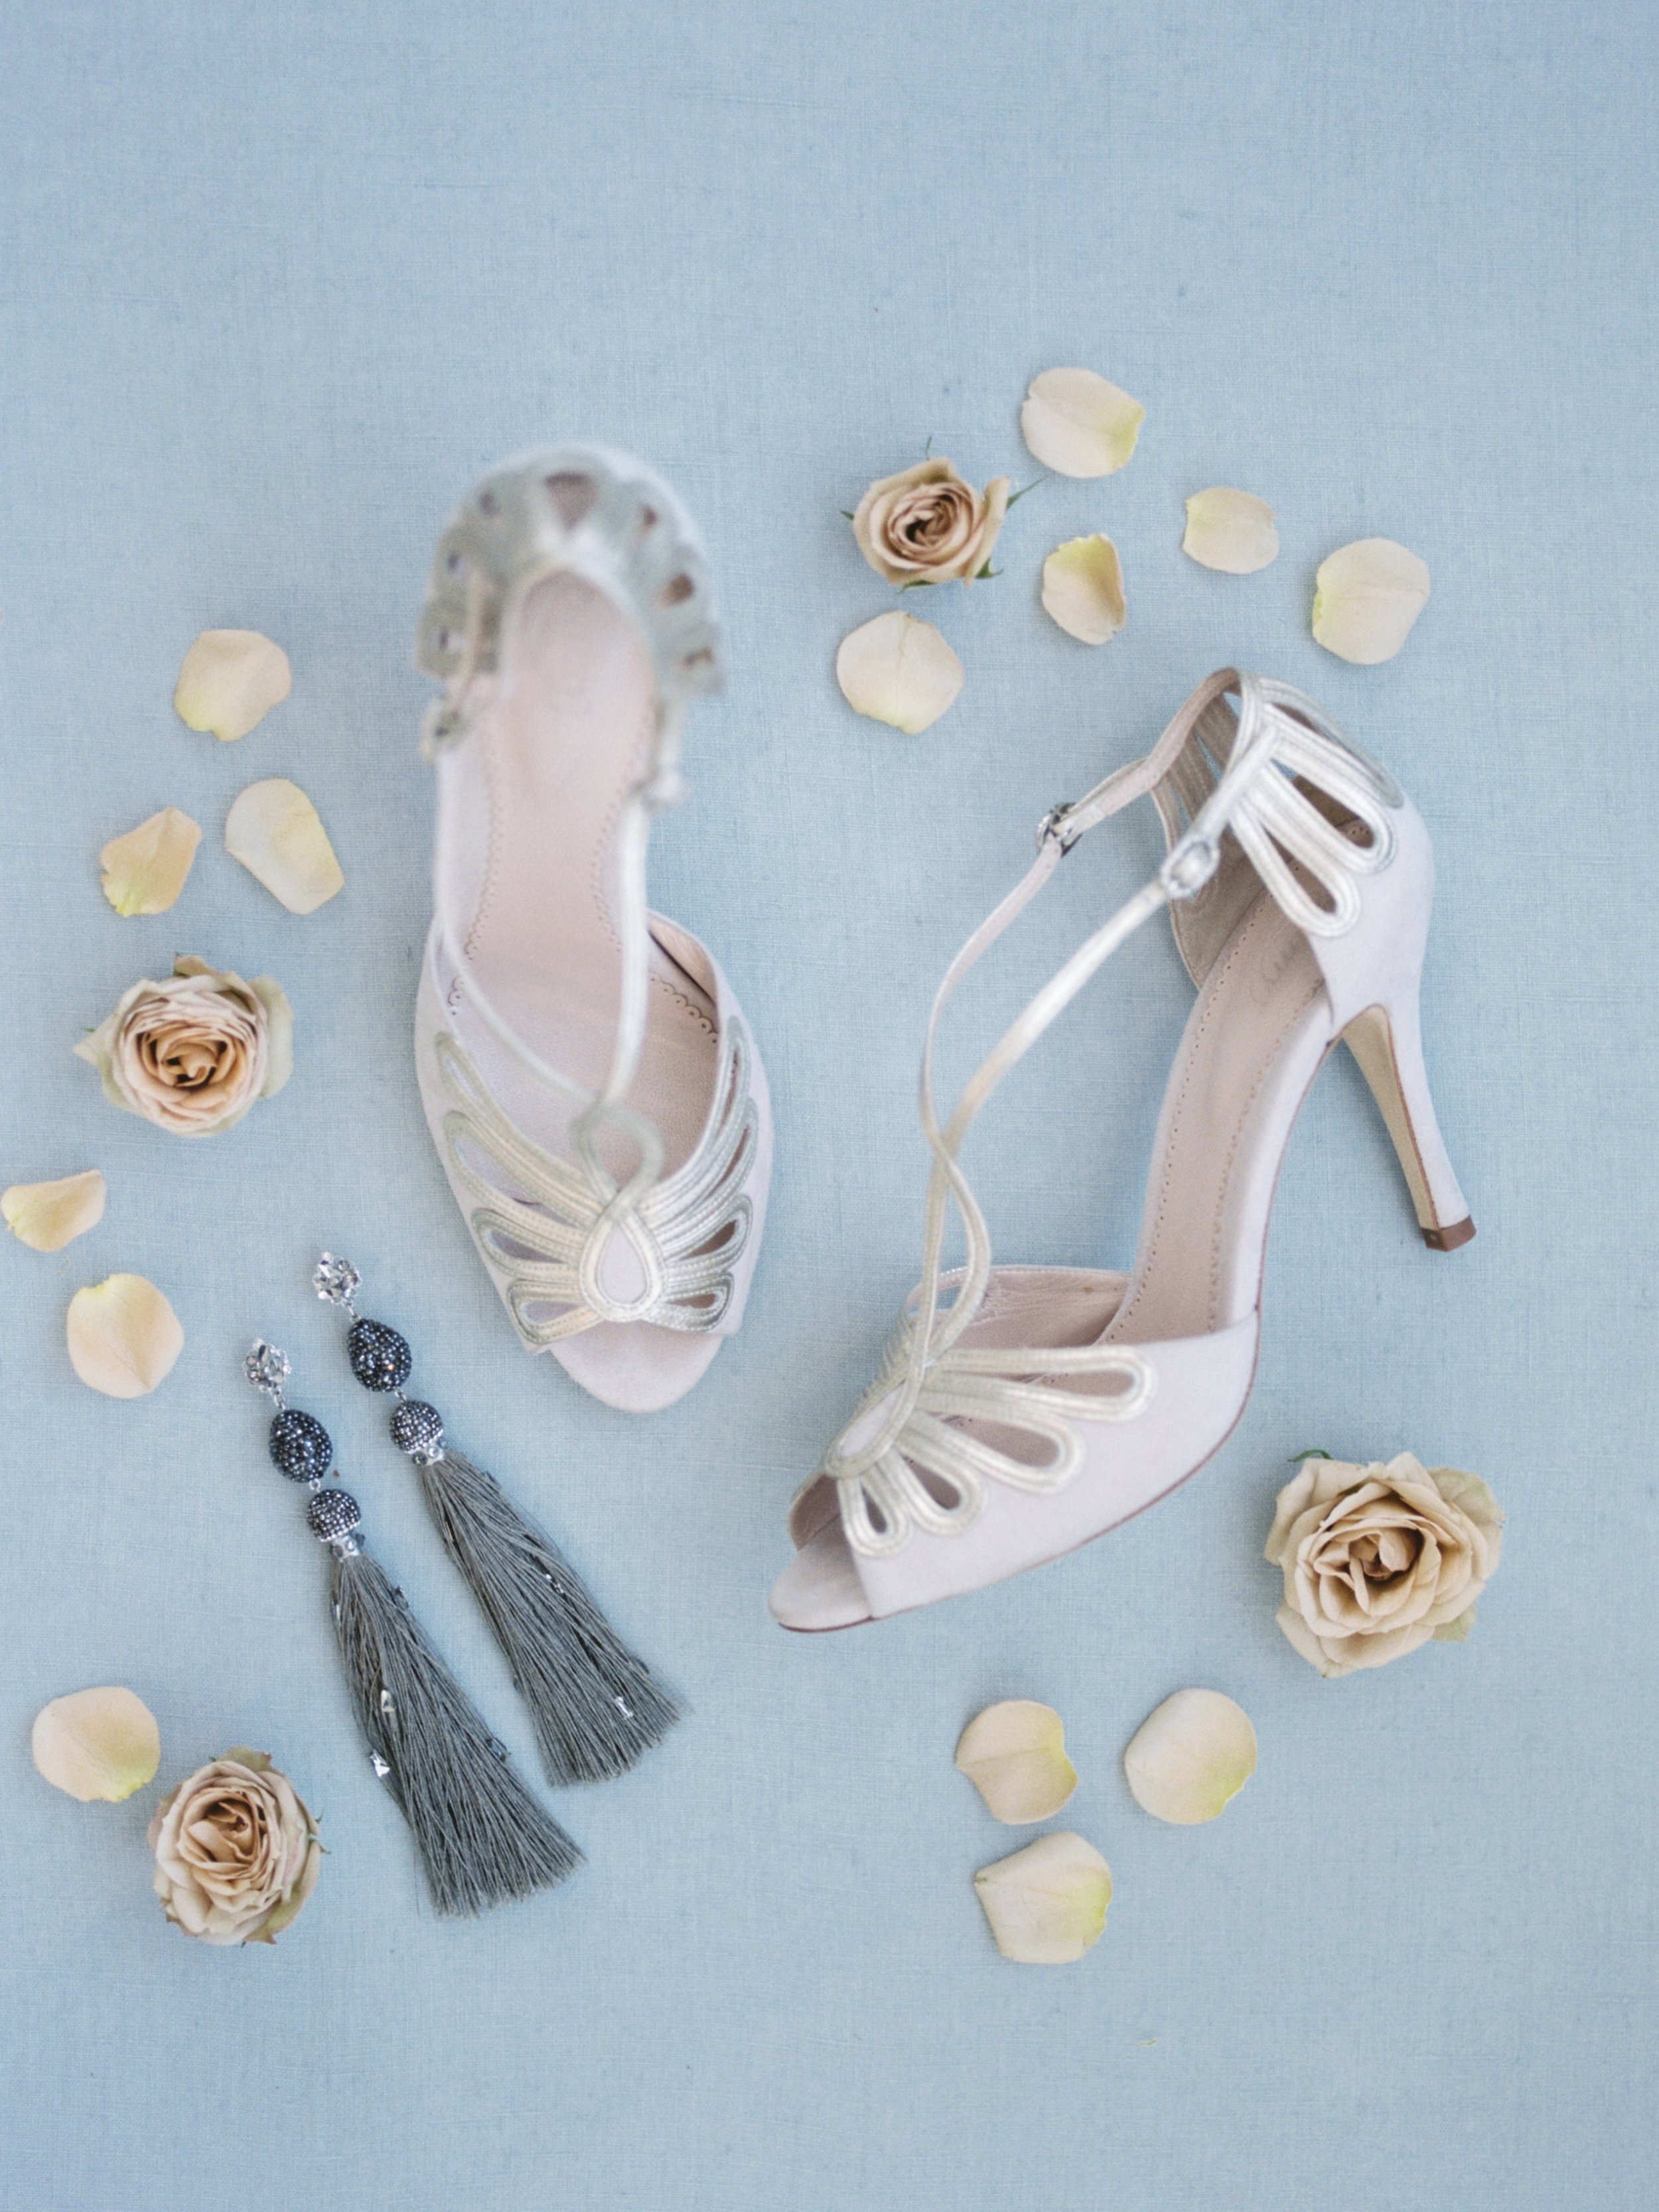 Emmy London Leila shoes and Maria Elena Headpieces tassel earrings | Spring Bridal Inspiration from Little White Dress Bridal Shop in Denver, Colorado | Decorus Photography